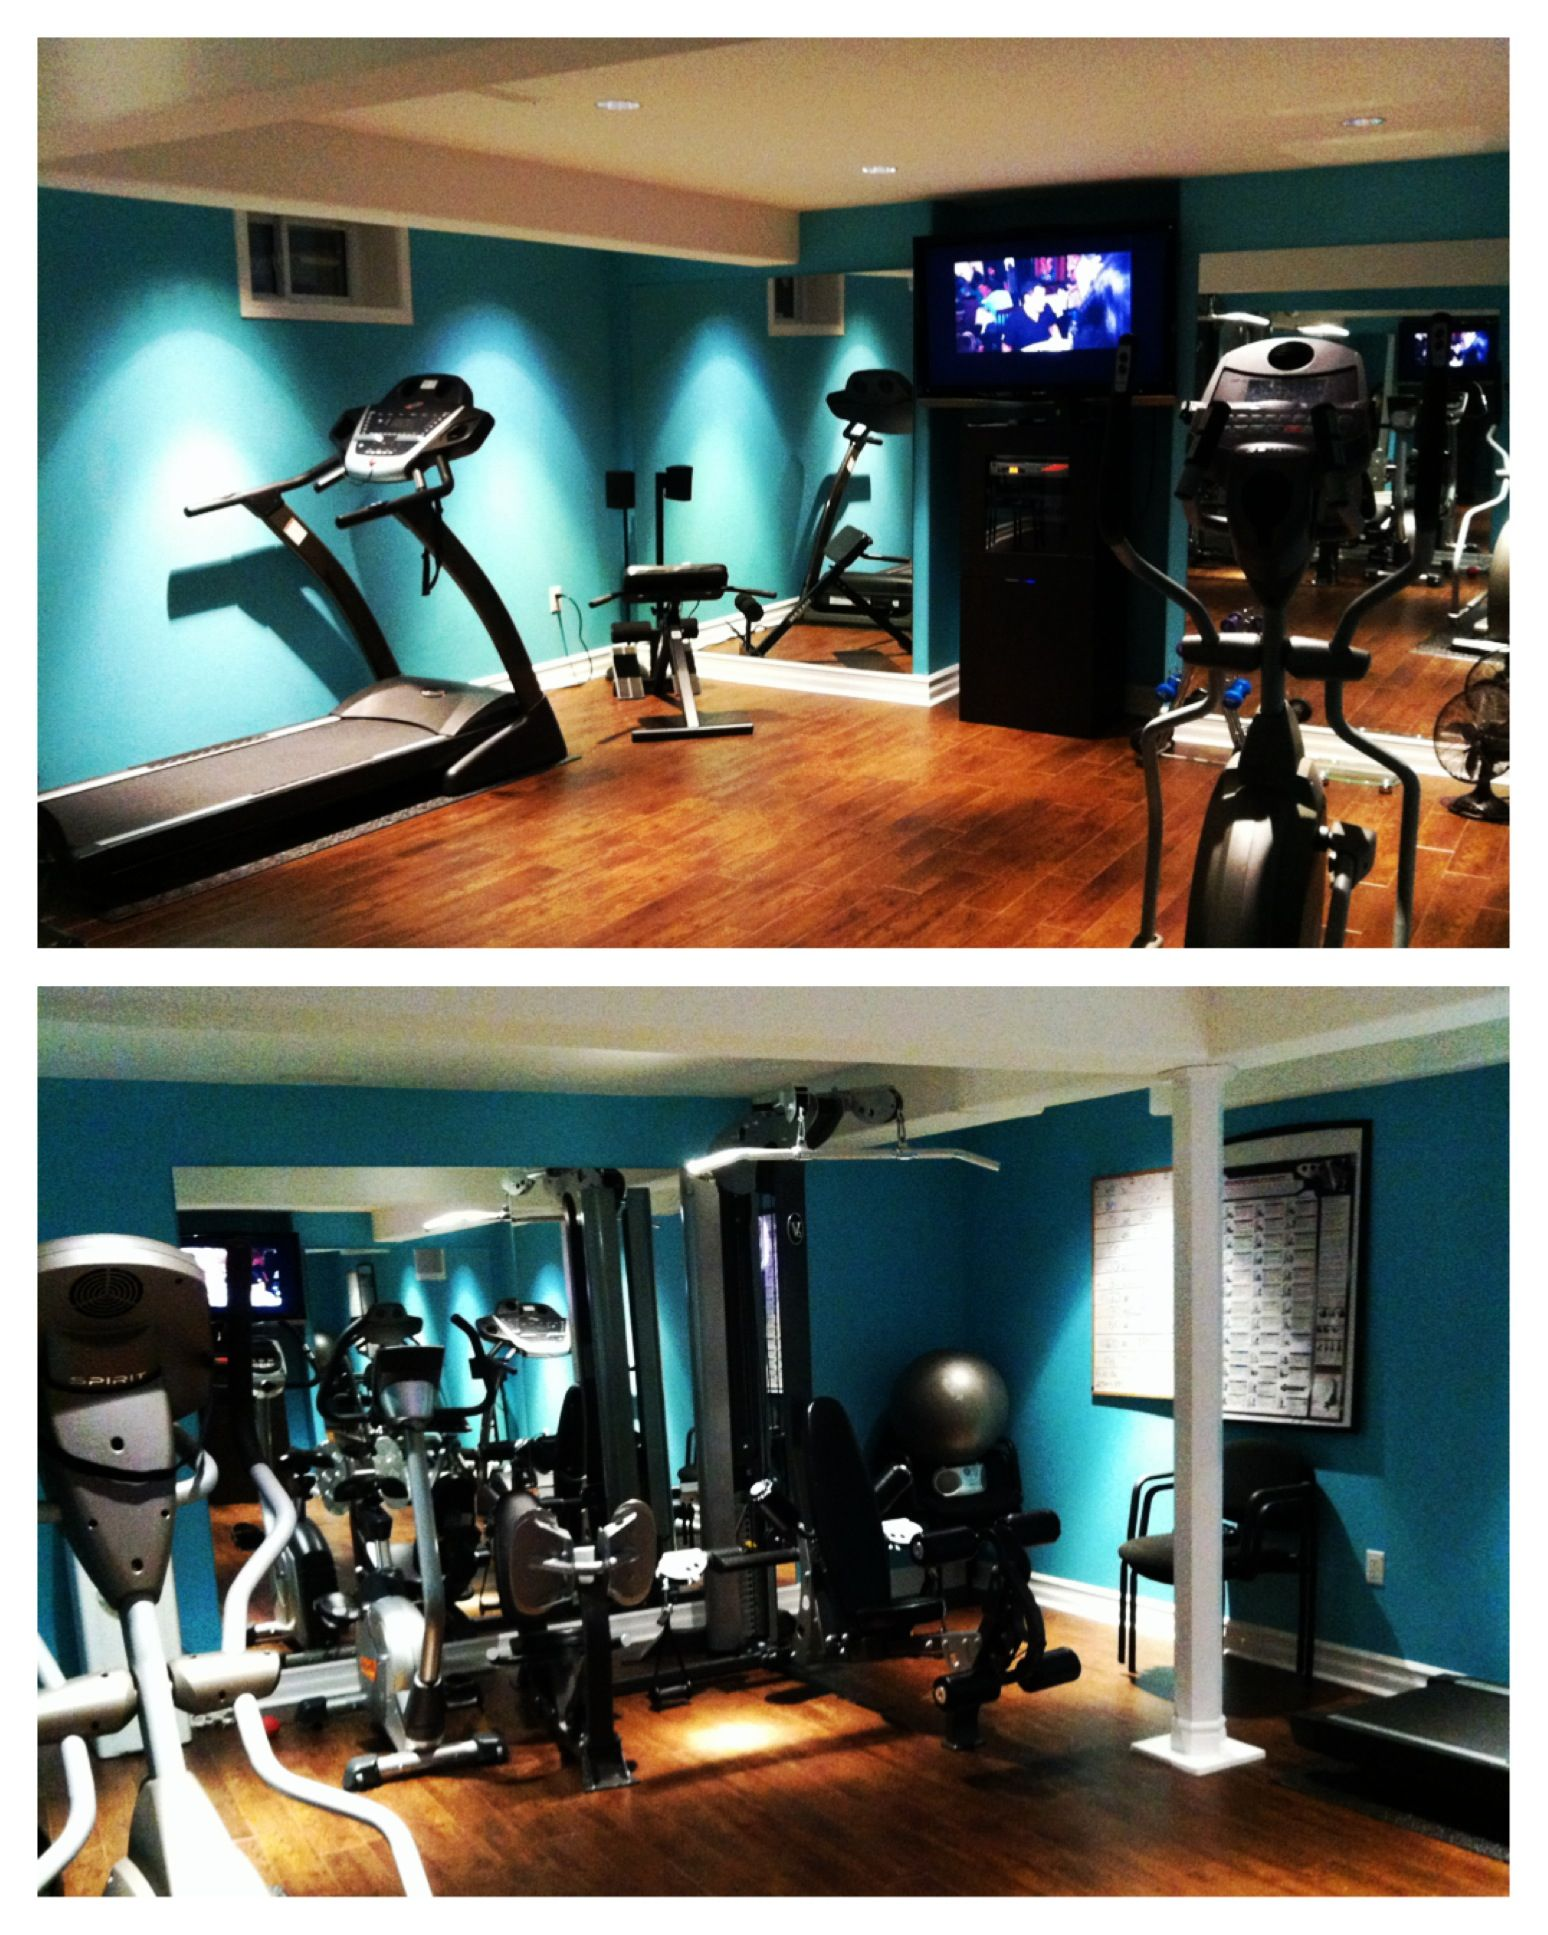 Pin By Tina DuPlayee On Basement Gym Ideas In 2019